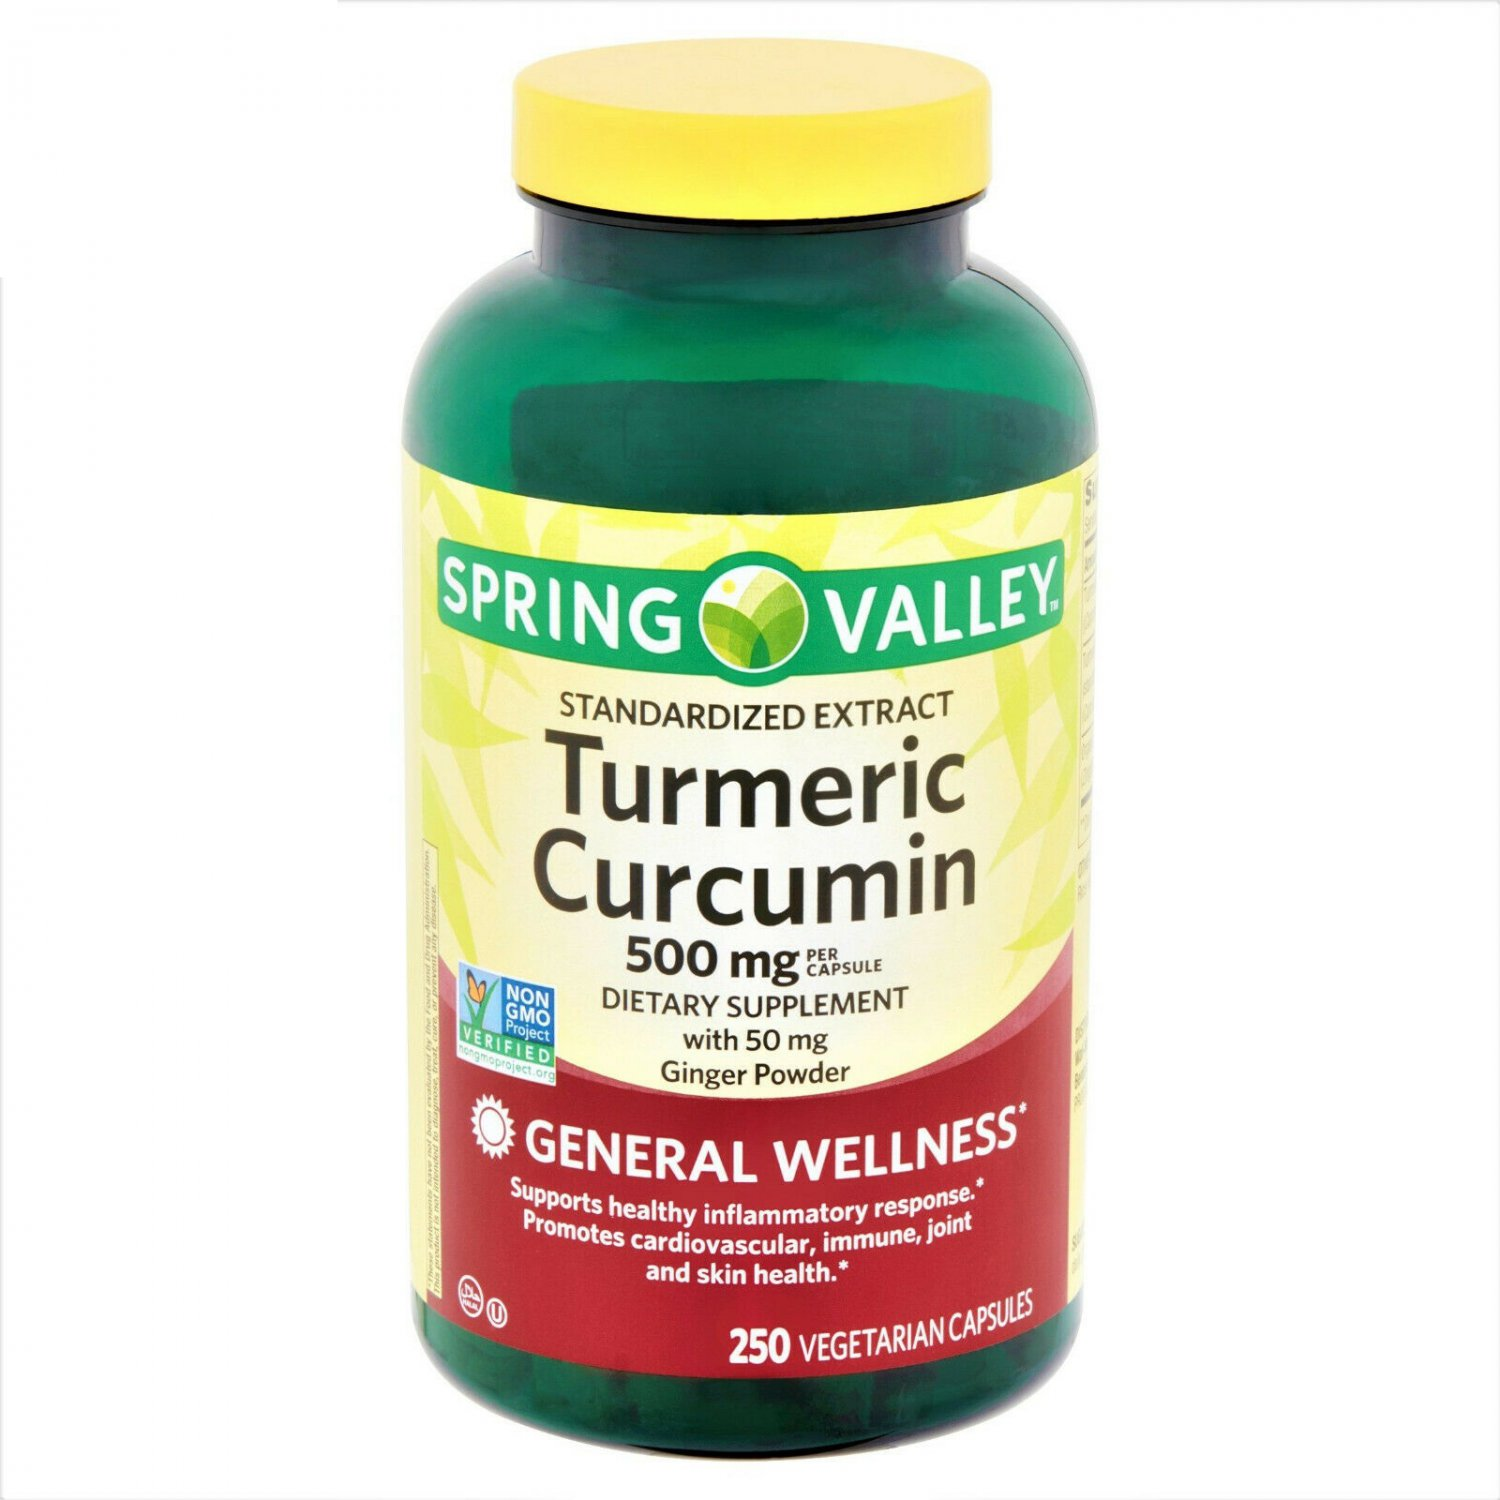 Spring Valley Standardized Extract Turmeric Curcumin Vegetarian Capsules 500 mg 250 Count